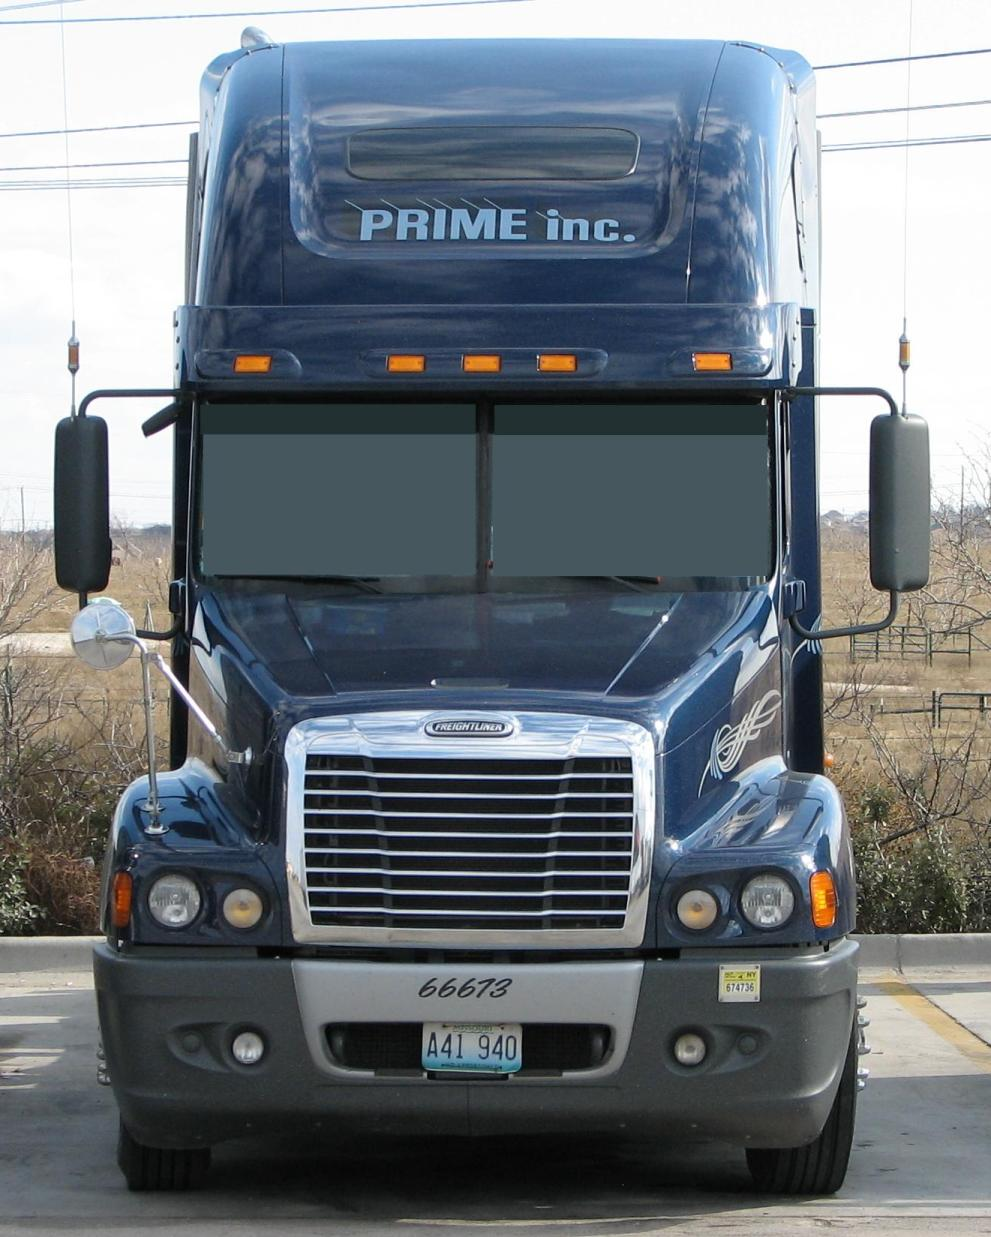 Cdl truck driving submited images